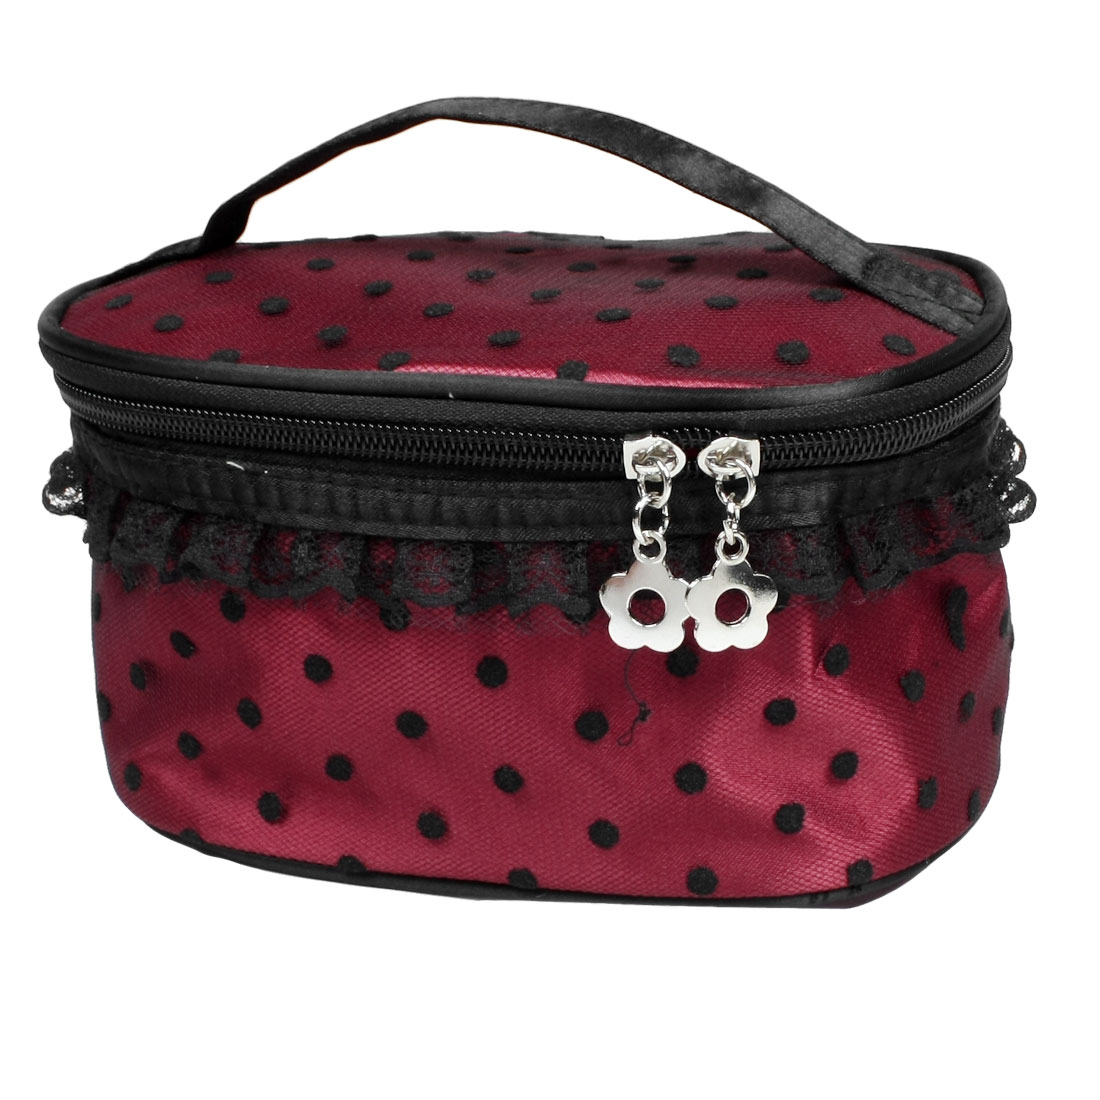 Burgundy Black Zipper Closure Portable Meshy Lace Toiletry Makeup Cosmetic Bag